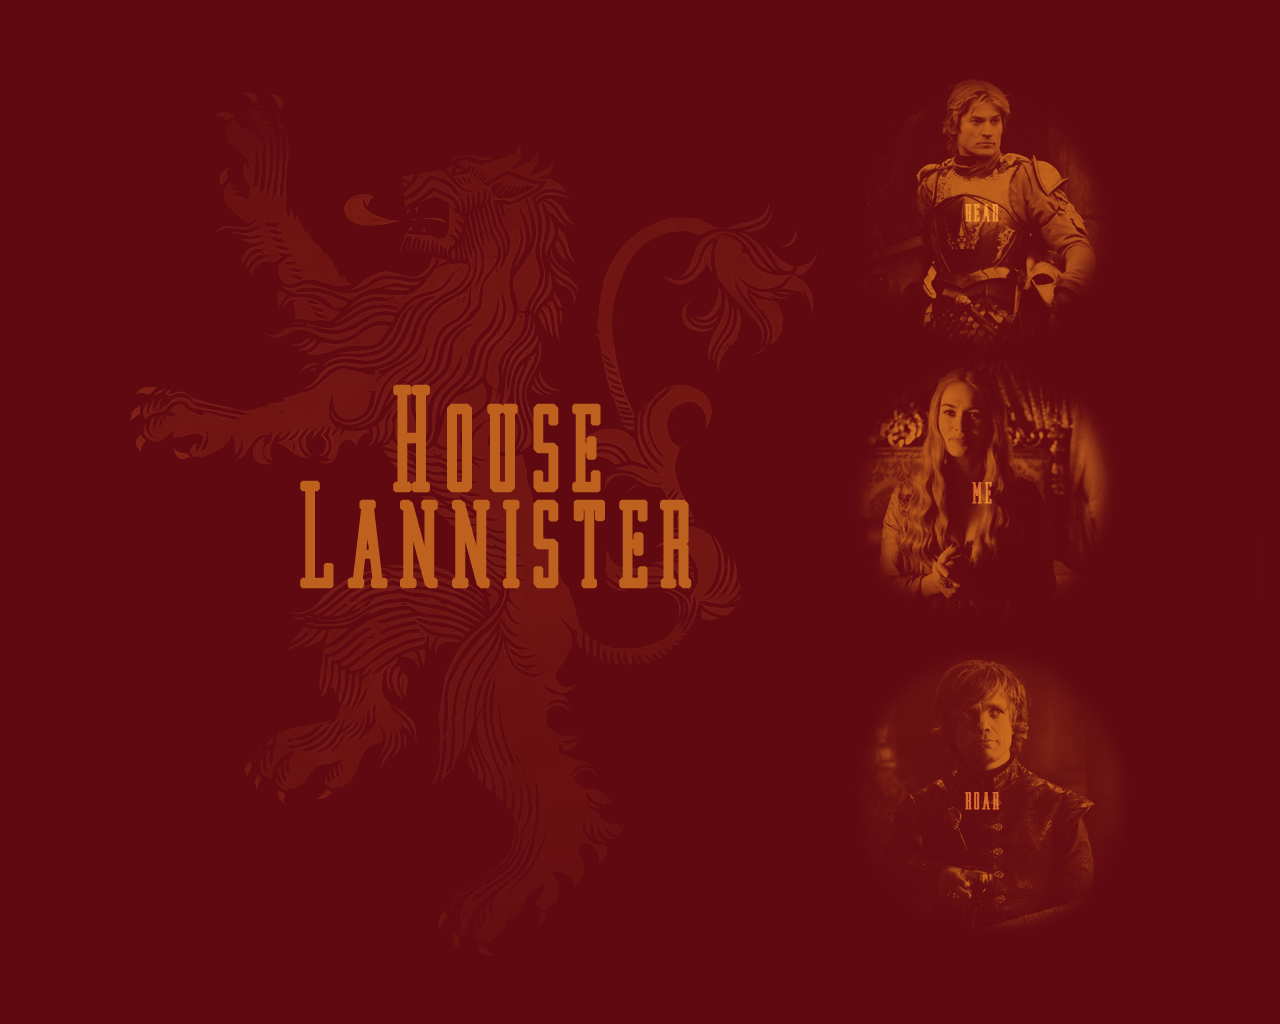 House lannister images house lannister hd wallpaper and for House of wallpaper